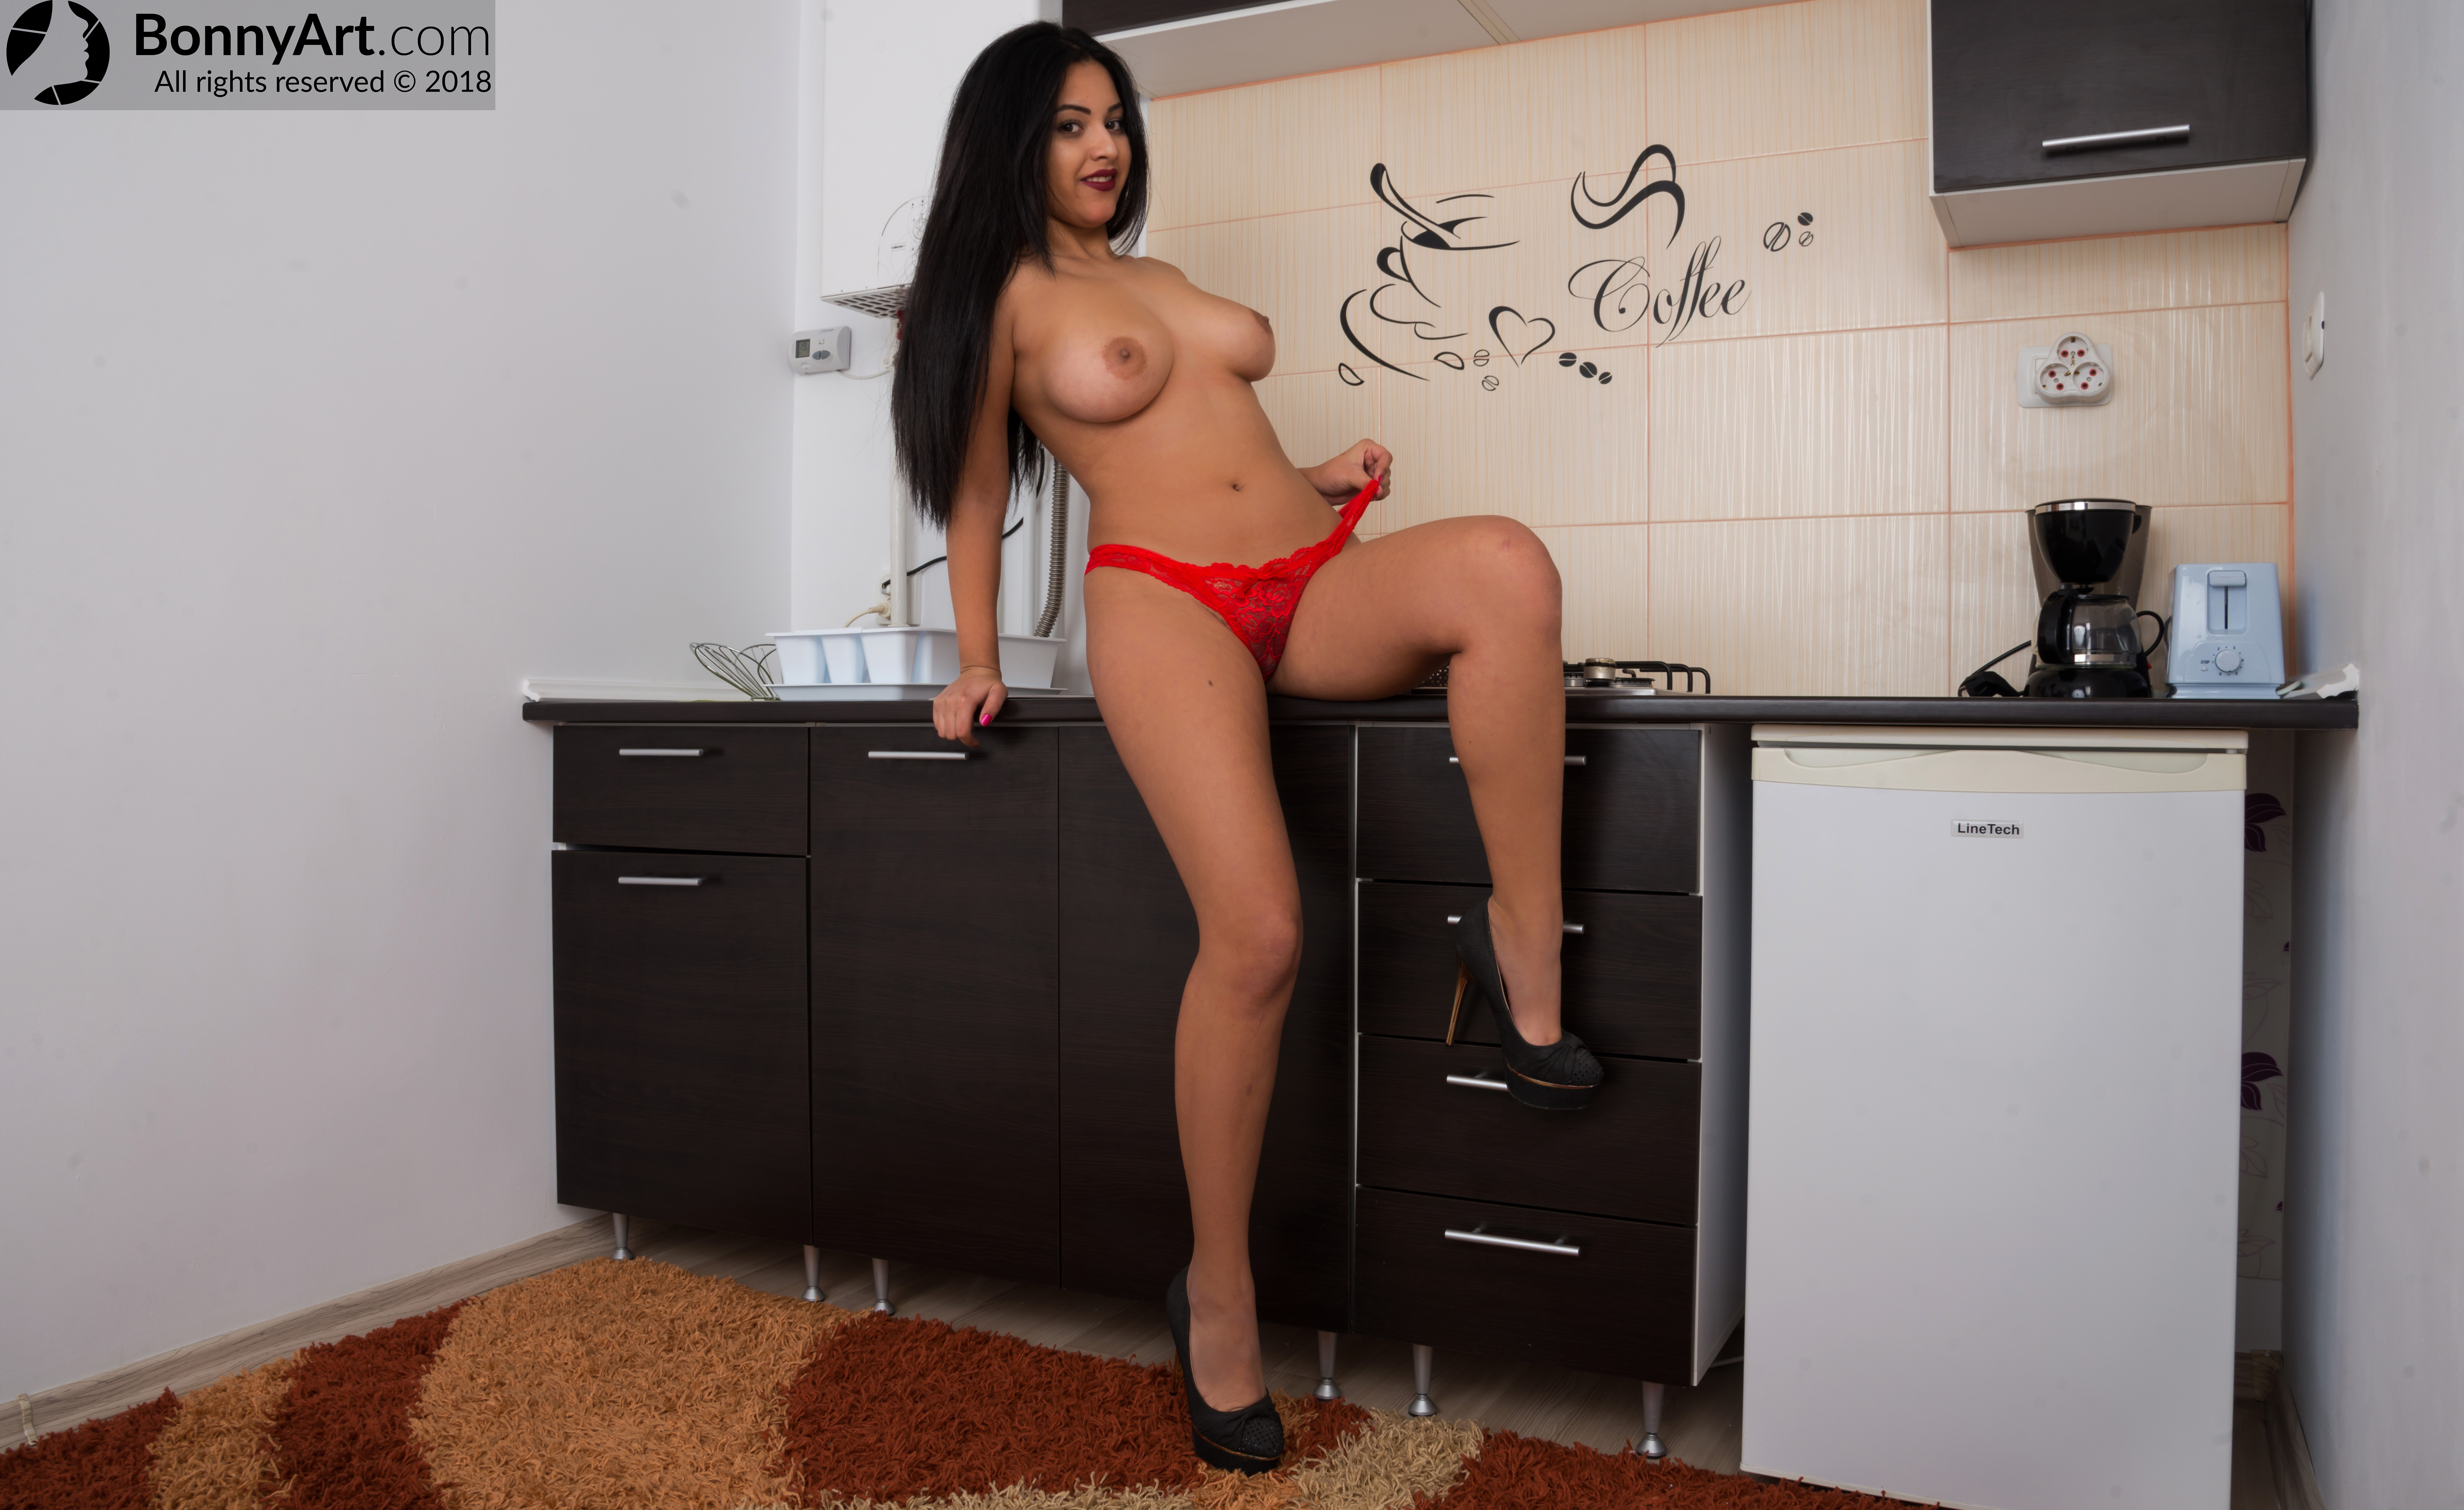 Latina Teen Girl Topless in the Kitchen